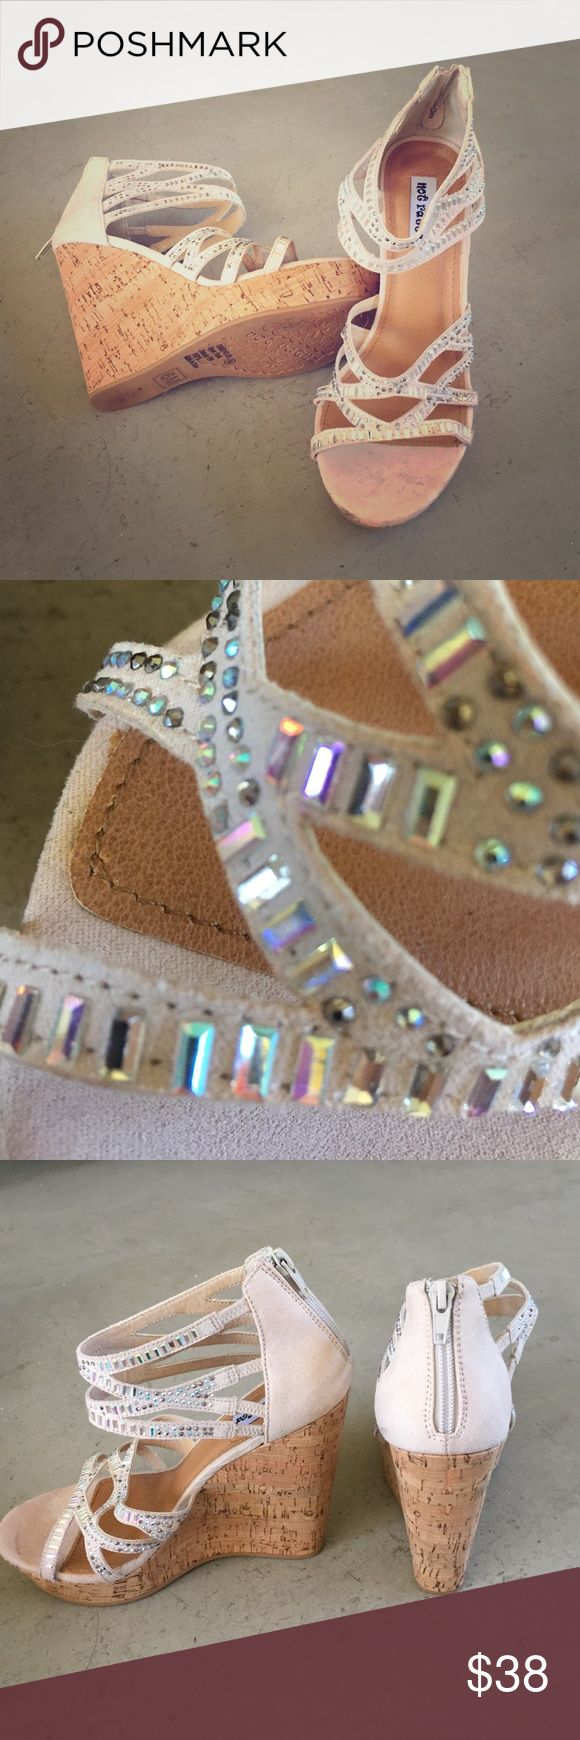 """Not Rated Wedges Never worn, adorable cork wedges with sparkling crystals. 4.5 """" heel 1.25"""" platform. Not Rated Shoes Wedges"""